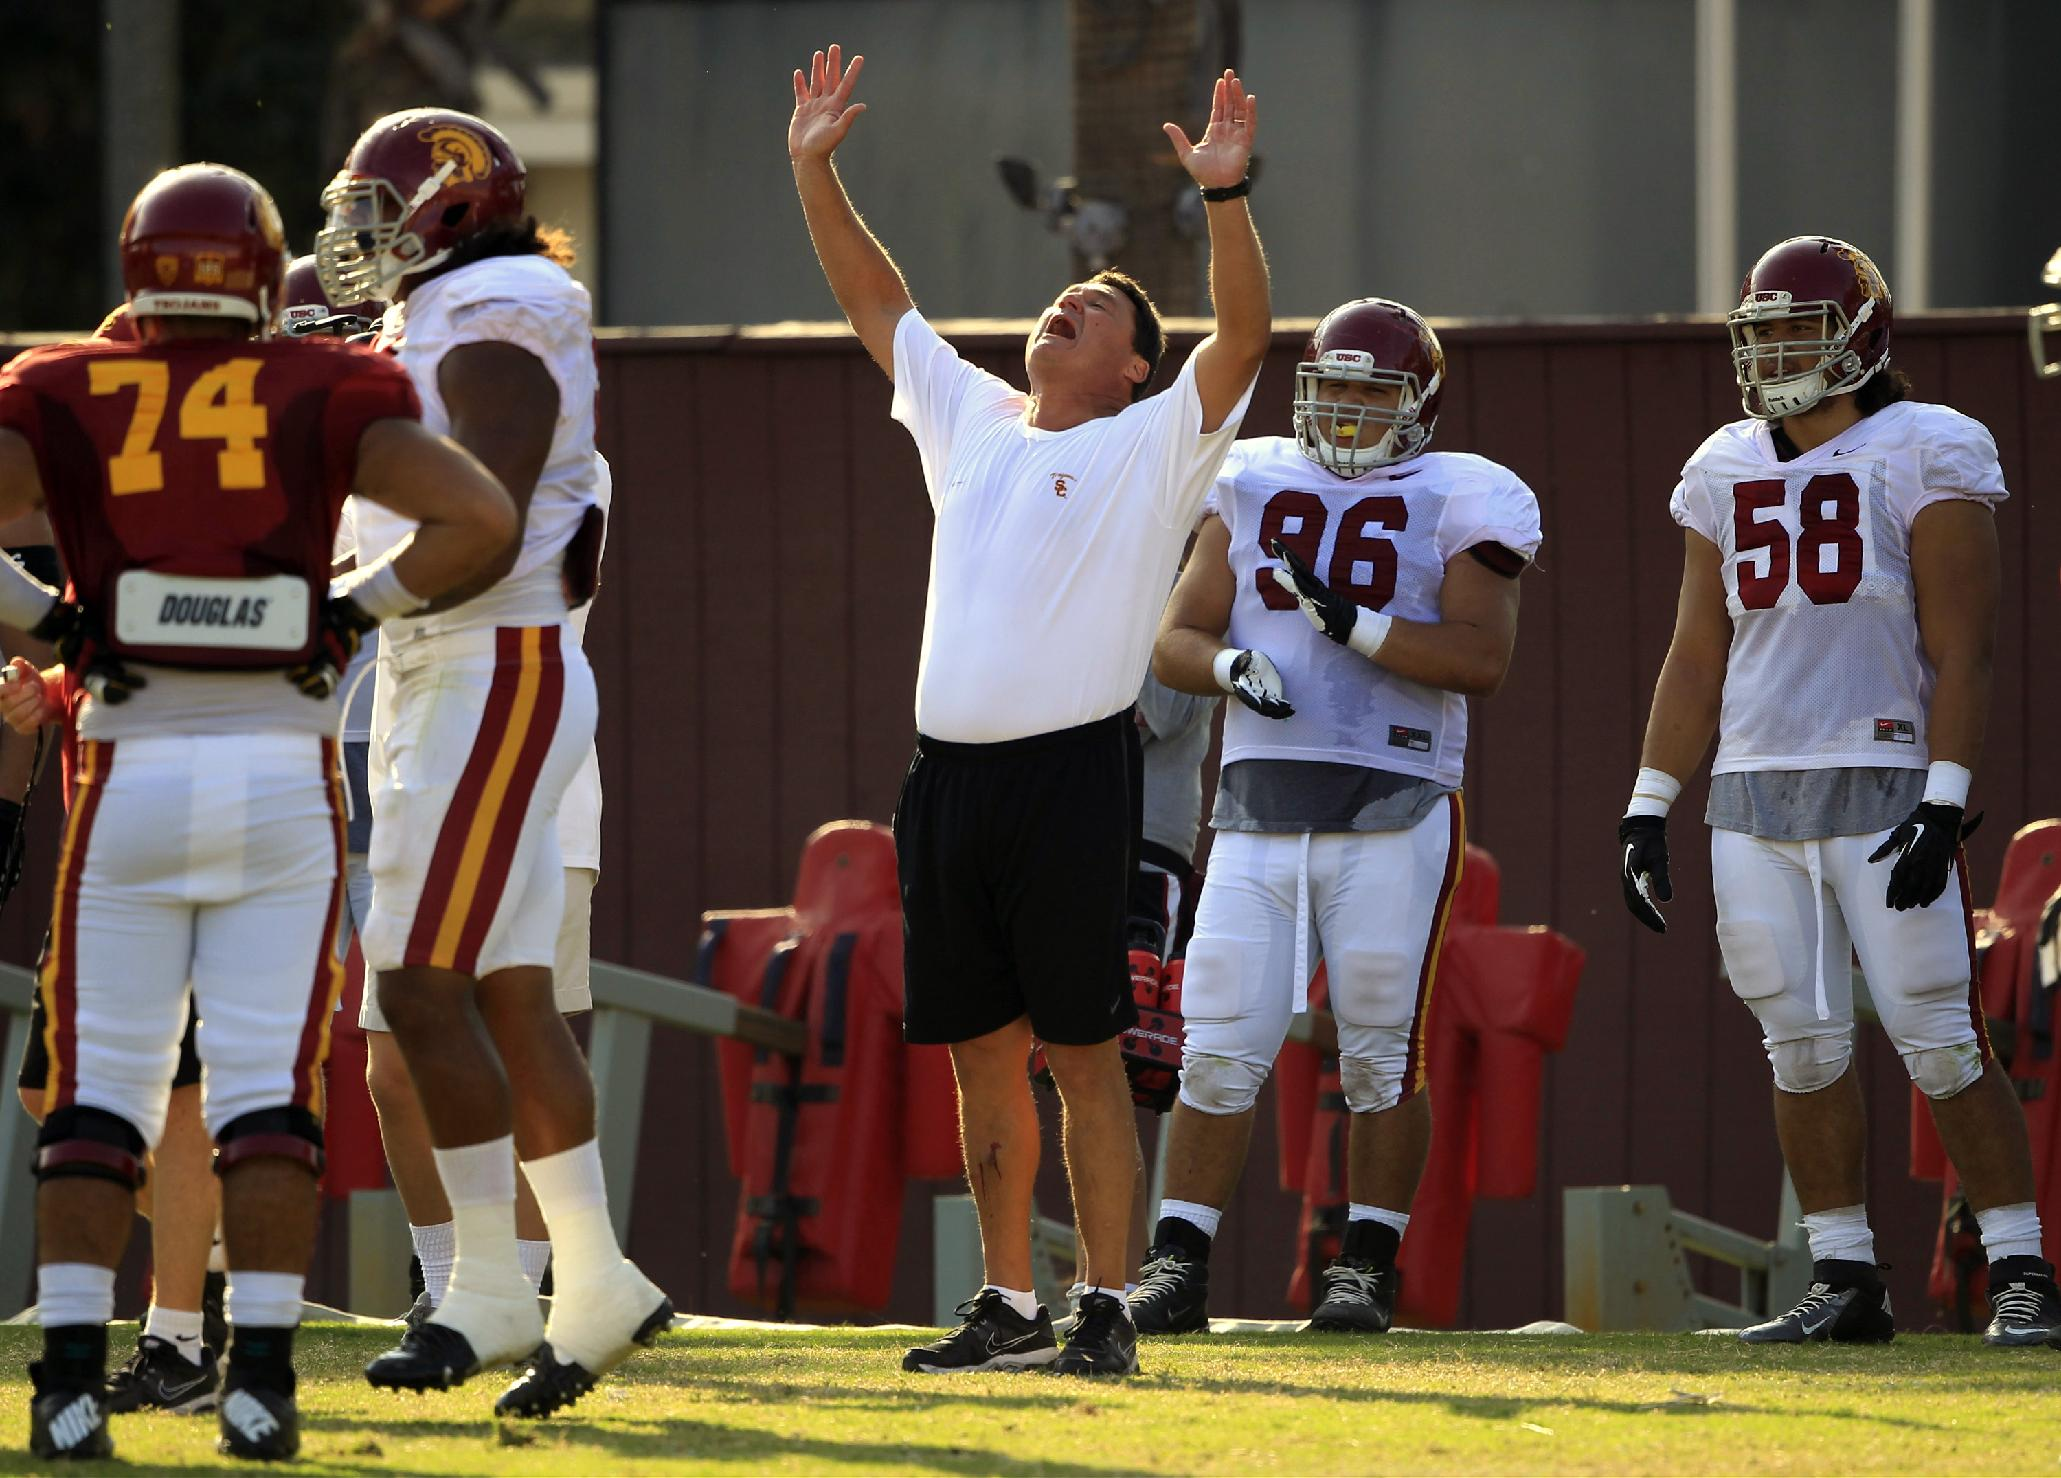 USC Trojans' interim football coach Ed Orgeron, center, lifts his arms during open NCAA college football practice on their Los Angeles campus on Wednesday, Oct. 2, 2013